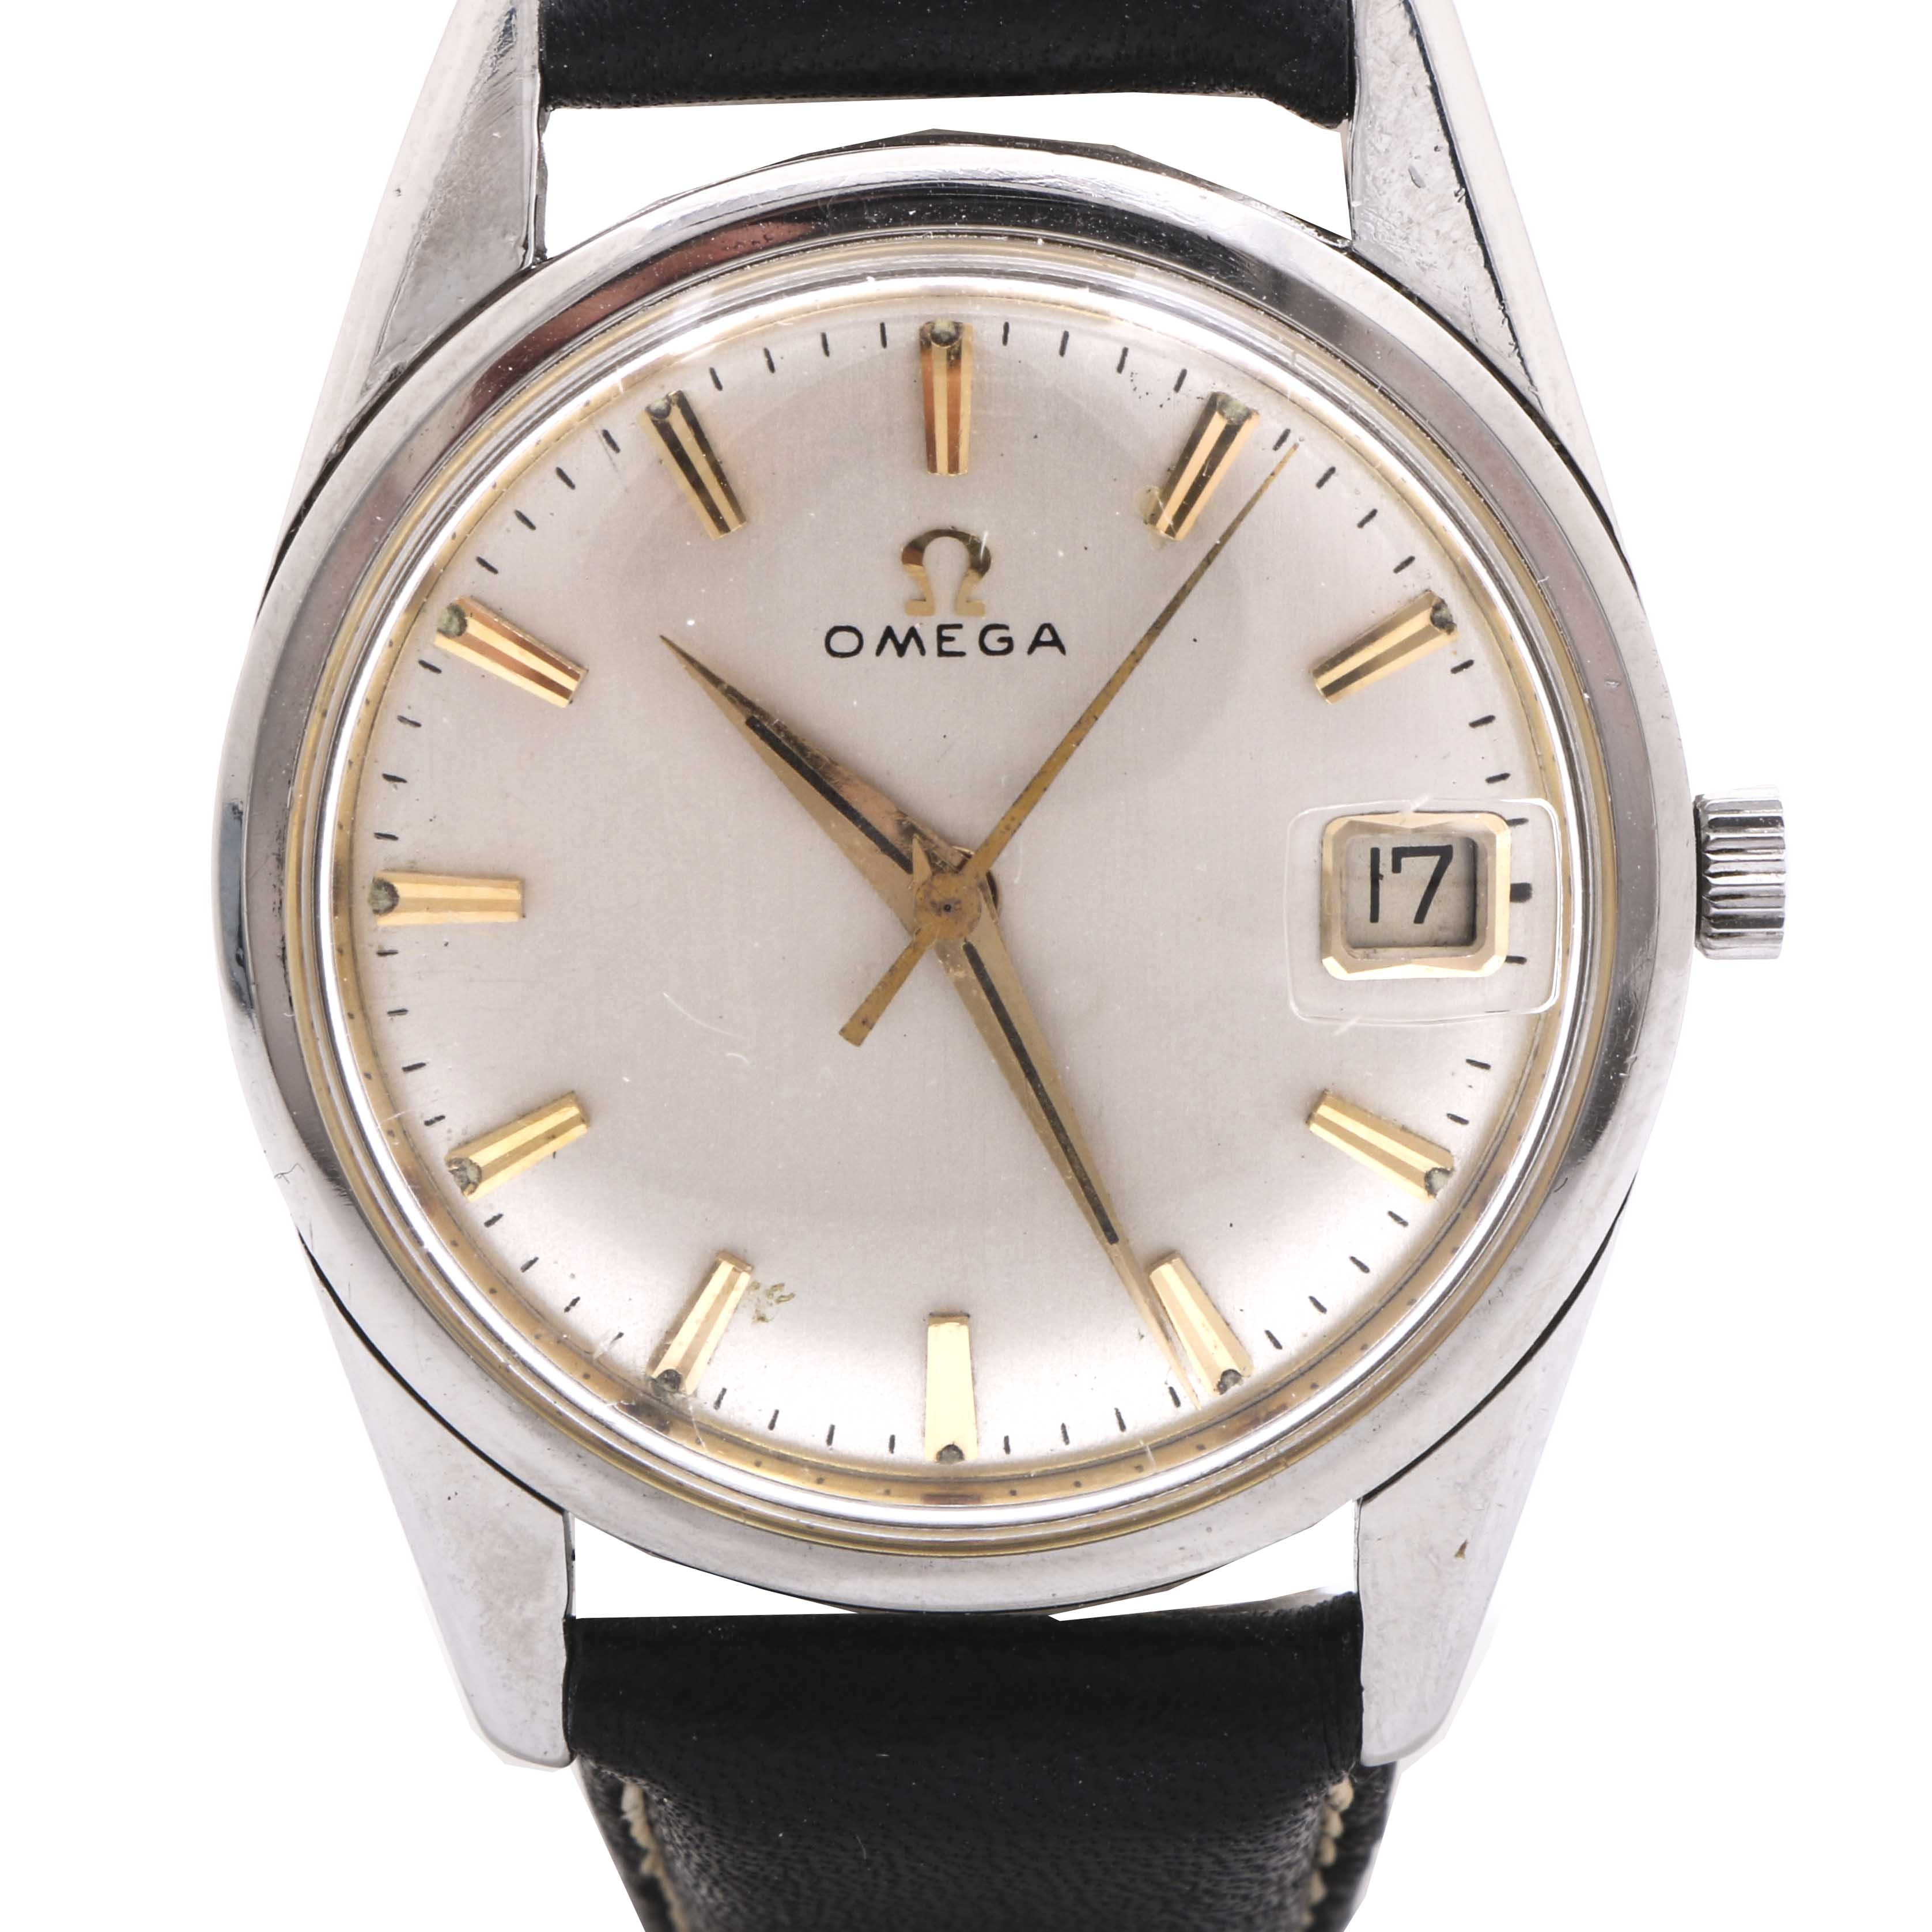 Vintage Omega Seamaster Automatic Wristwatch